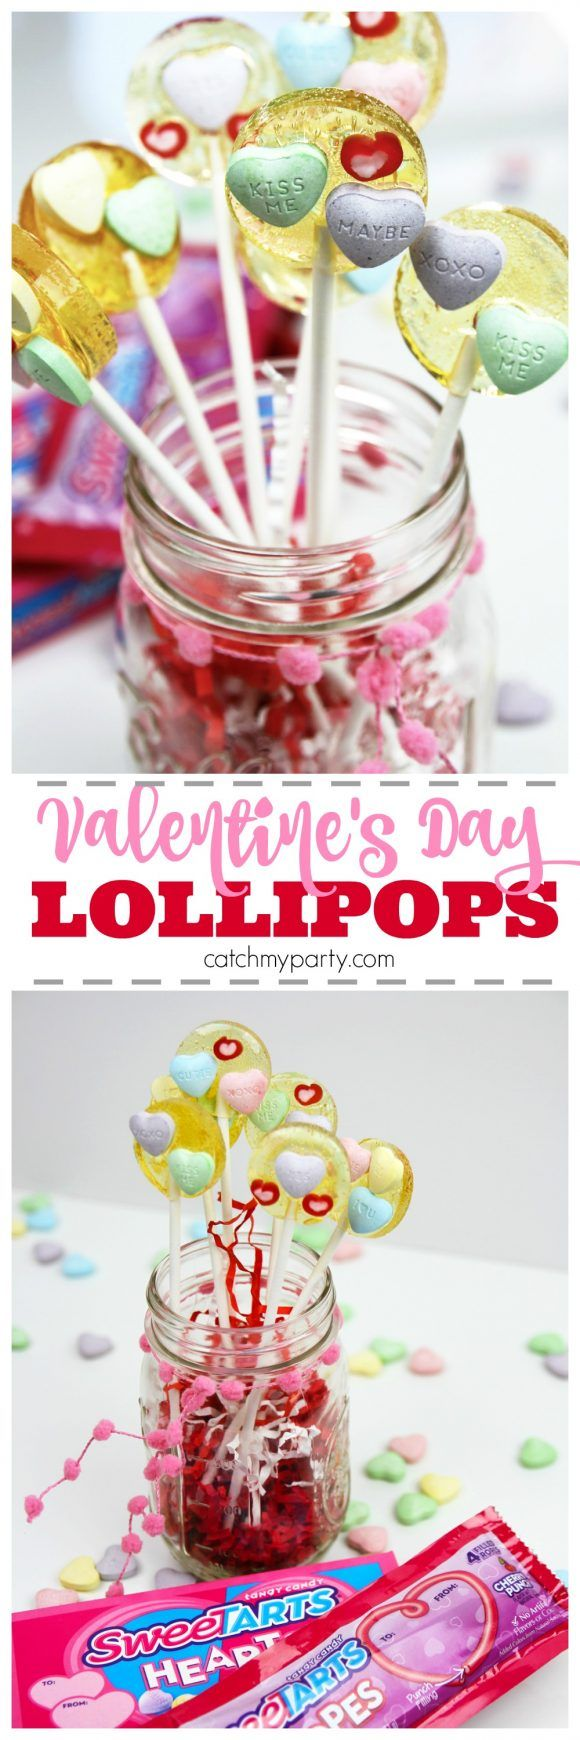 Homemade Valentine's Day SweeTART Lollipop Recipe!These are so easy to make and the perfect treat to give to friends, family, and classmates on Valentine's Day! I used @SweeTARTS Hearts and Soft & Chewy Ropes to make them. See more party ideas at CatchMyParty.com. #ad